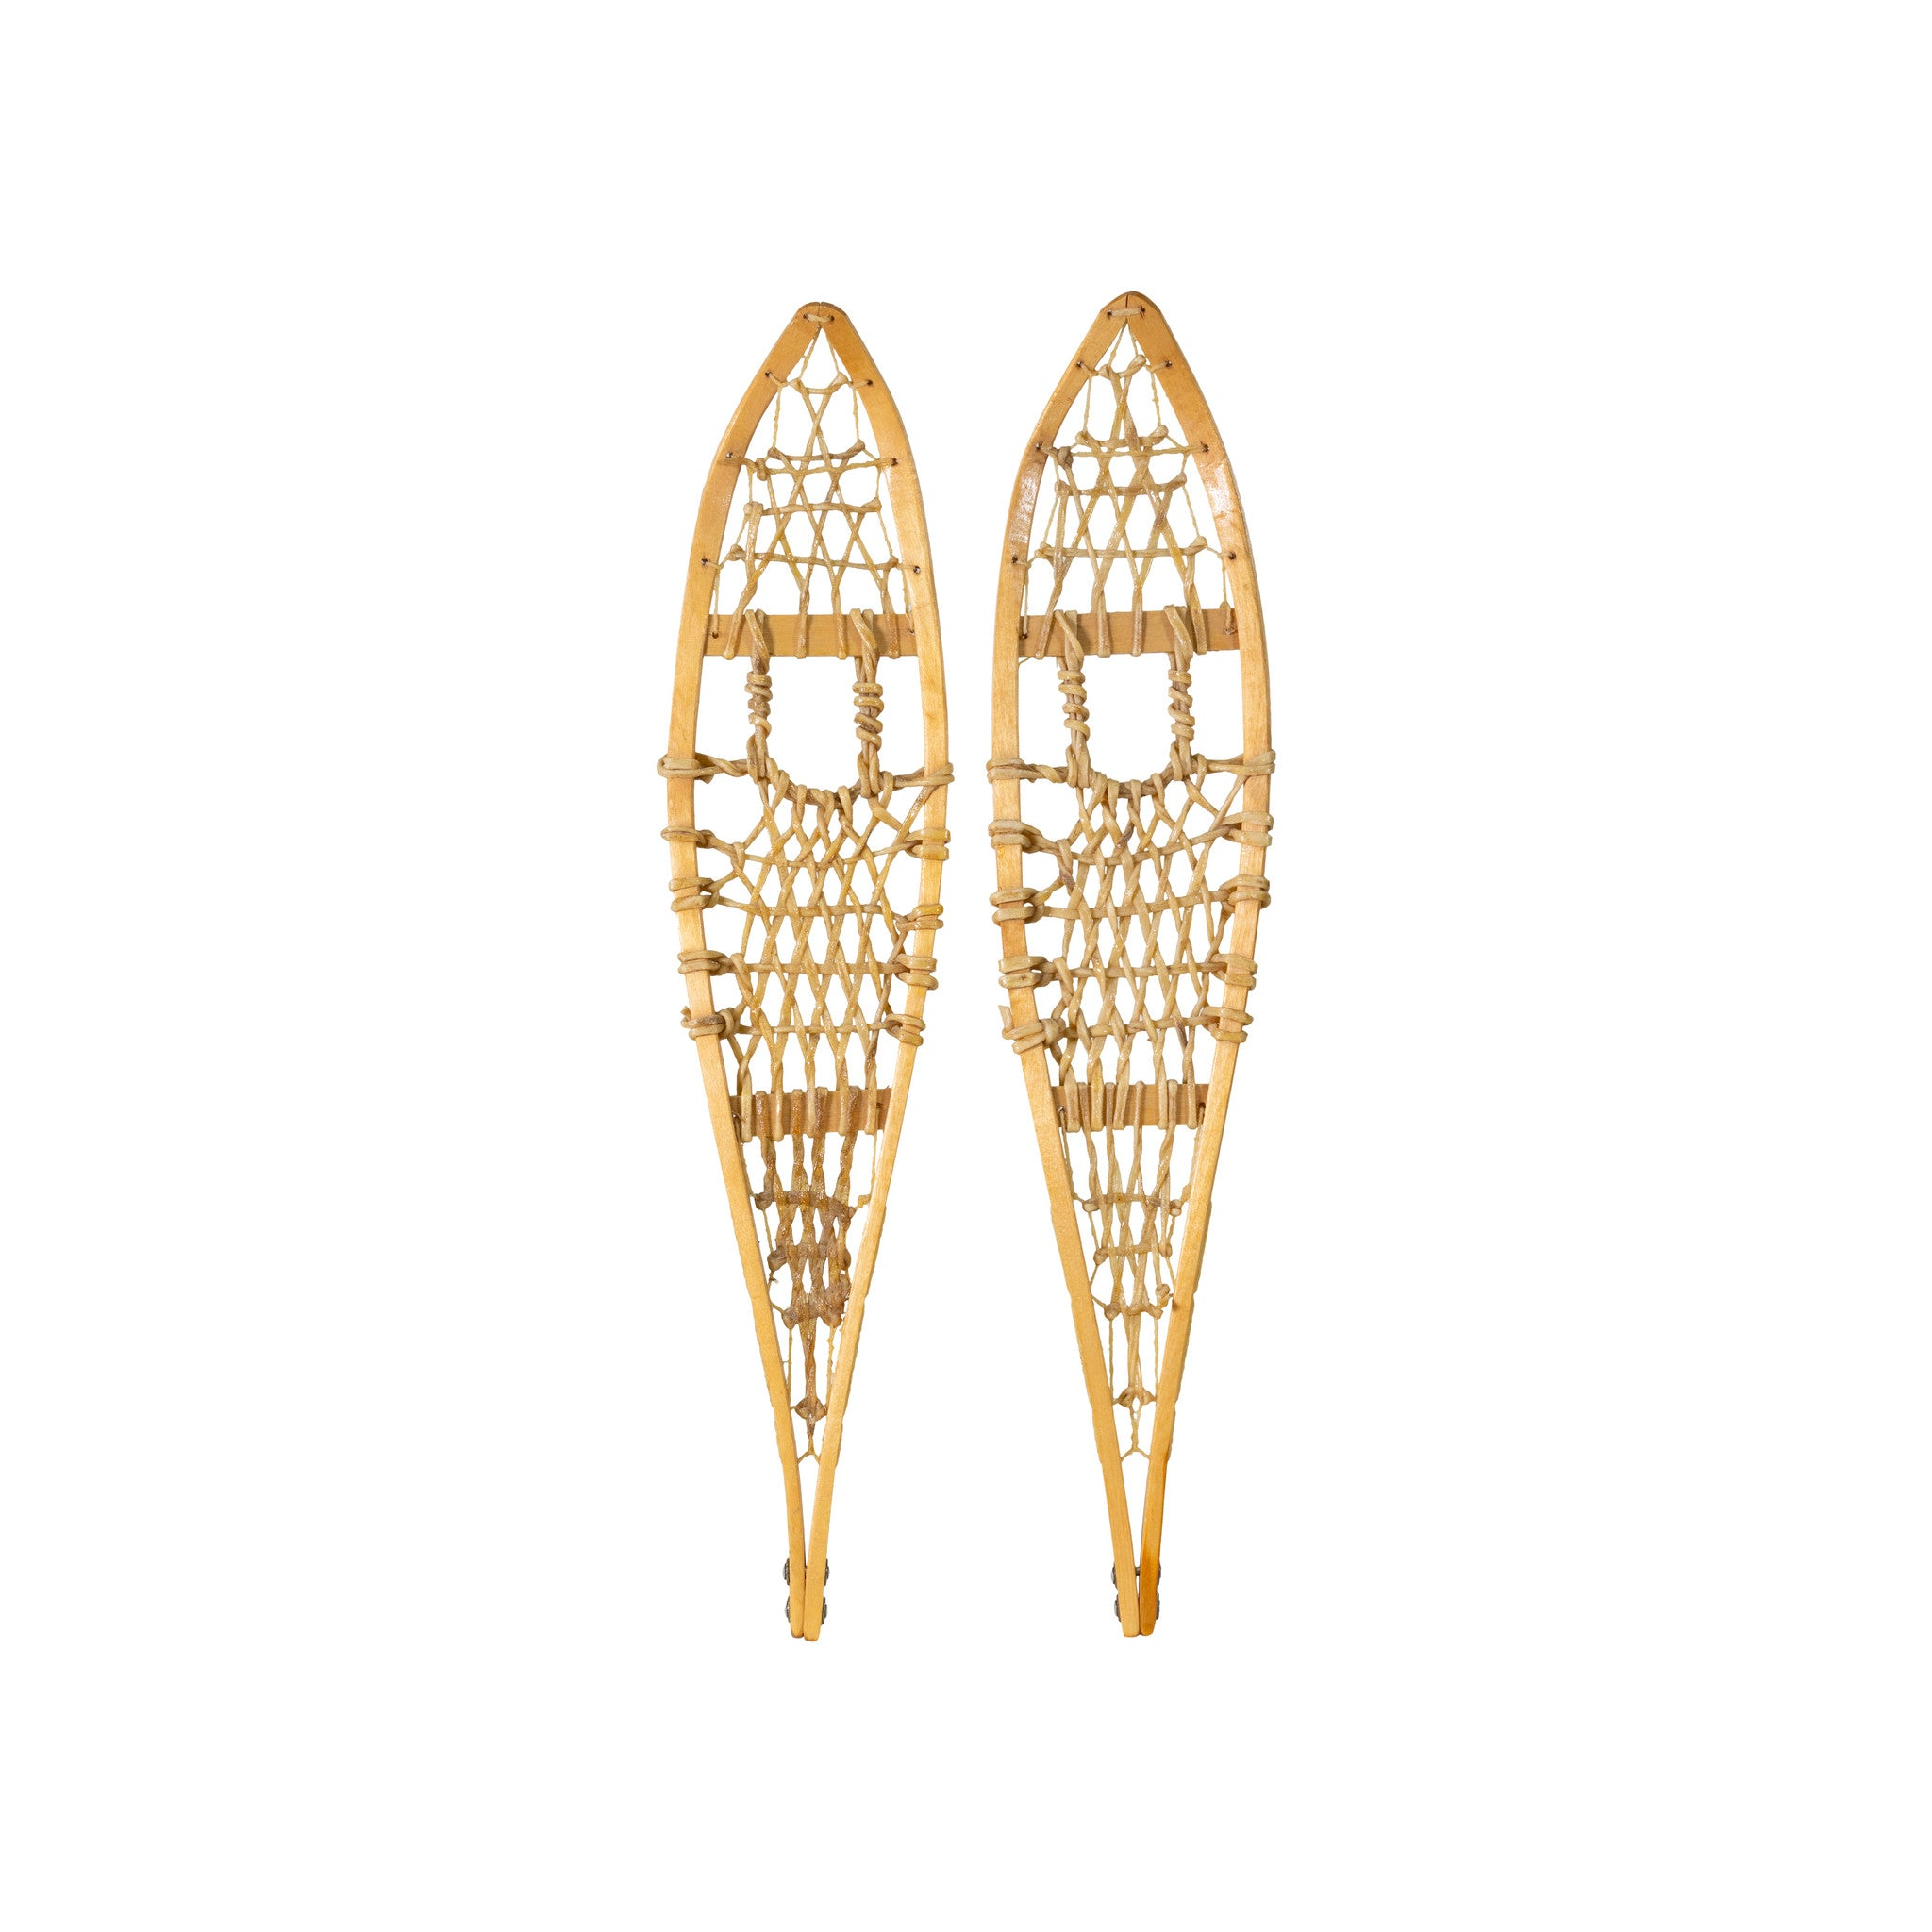 Trading Post Sample Snowshoes new item, sample snowshoes, snowshoes, trading post